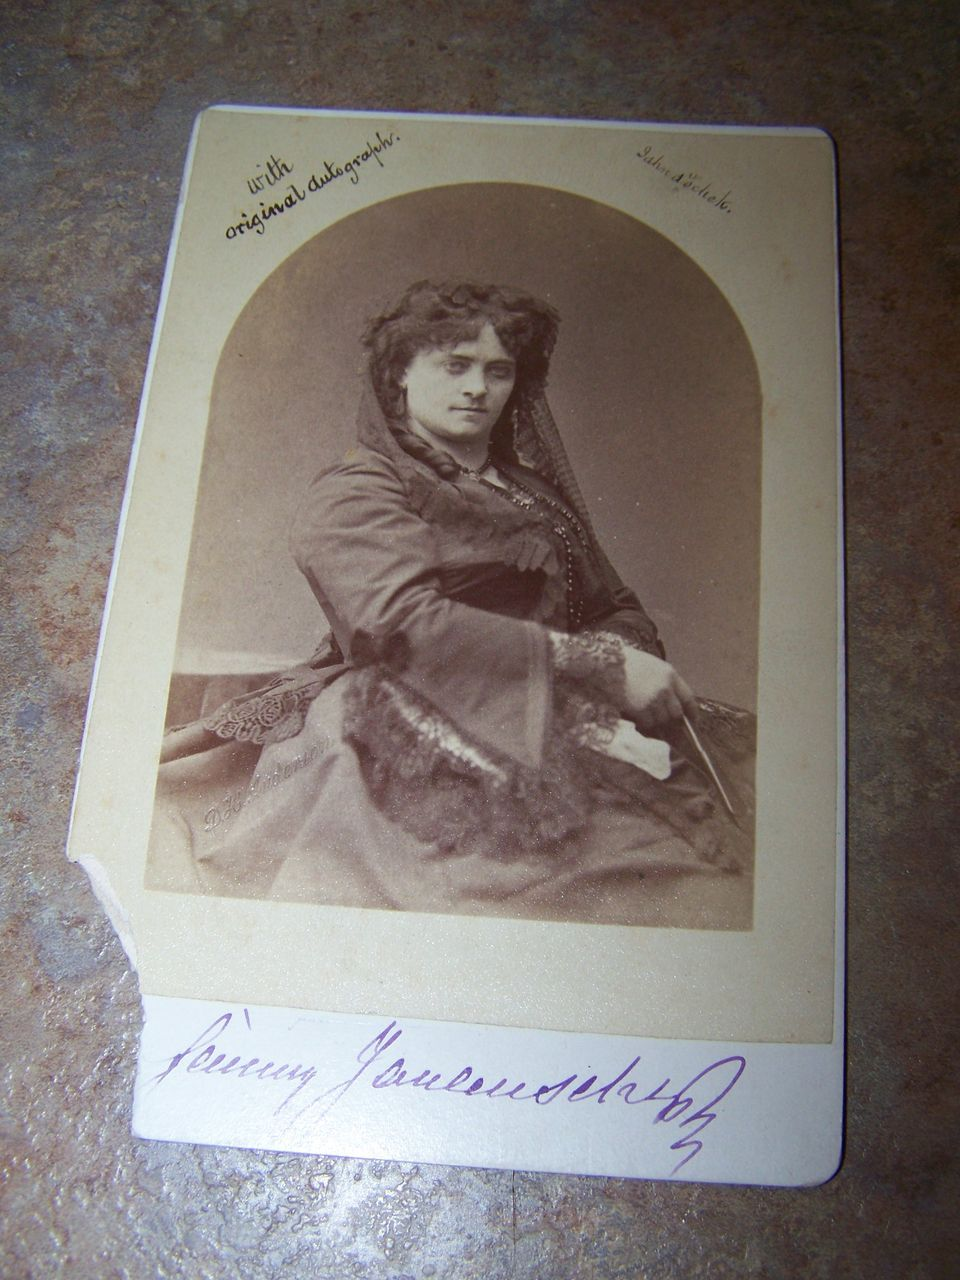 A Unique Vintage Portrait Photograph With Original Autograph